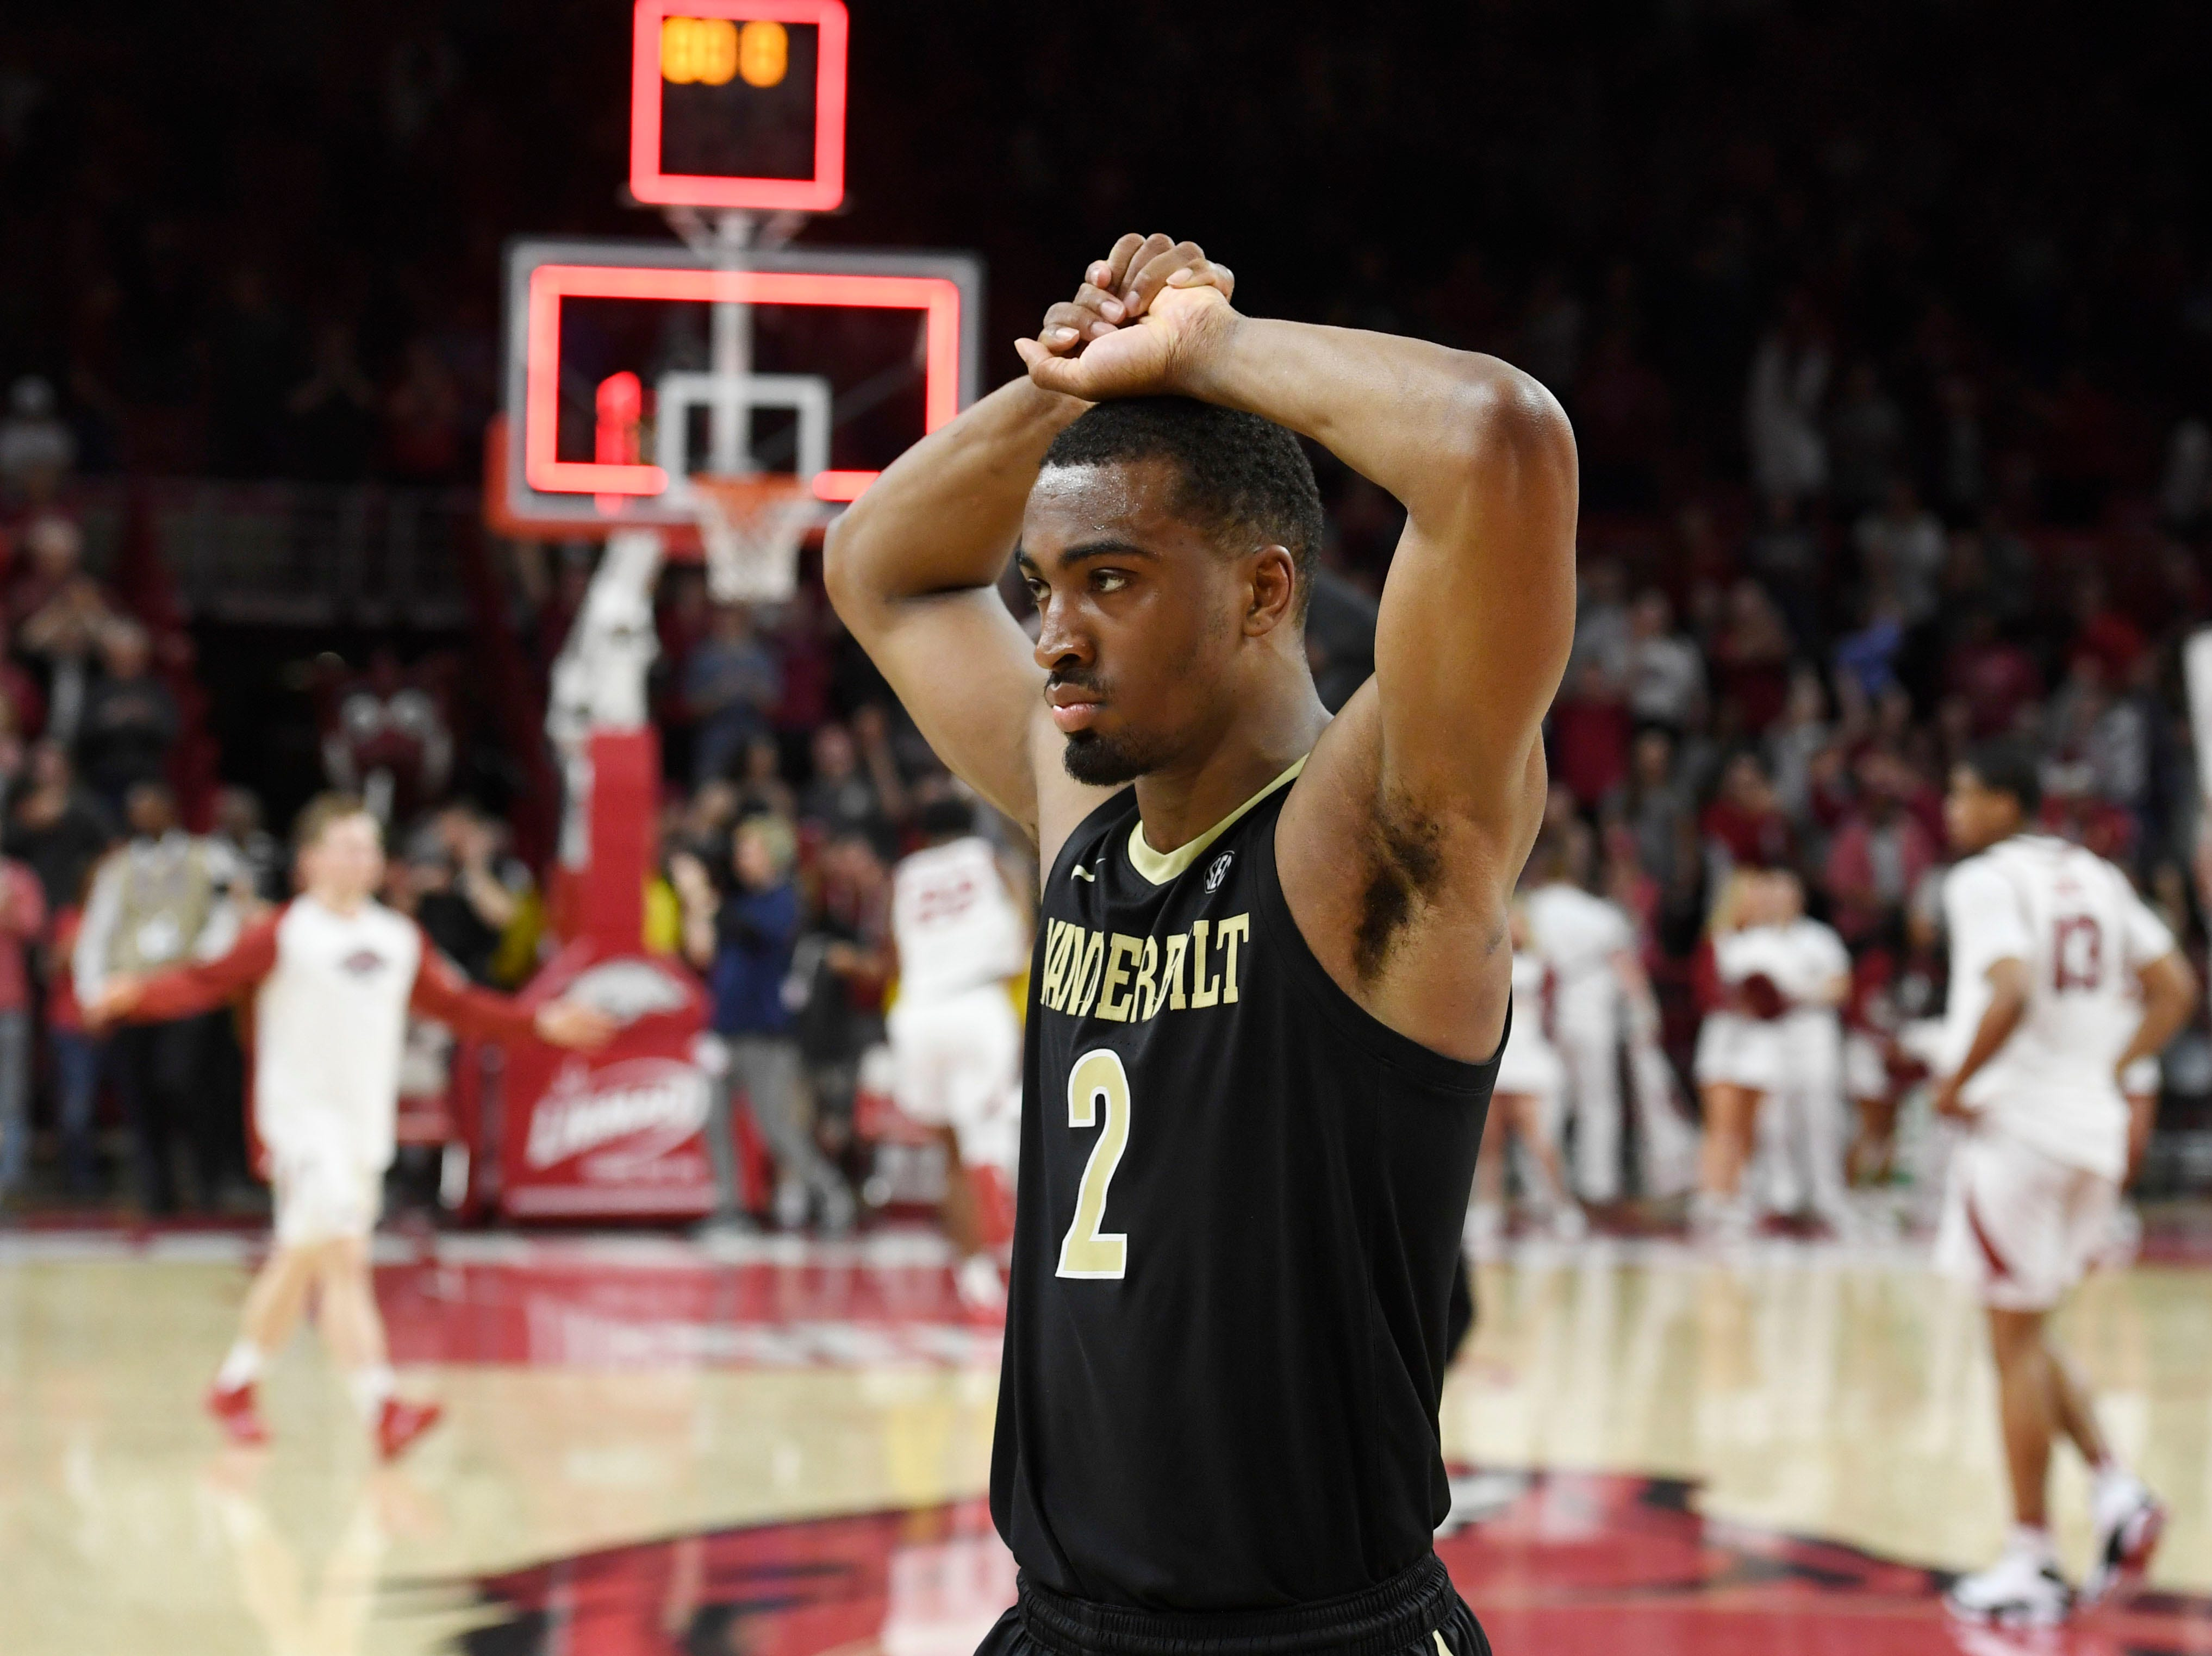 Vanderbilt guard Joe Toye (2) reacts after losing to Arkansas during the second half of an NCAA college basketball game, Tuesday, Feb. 5, 2019 in Fayetteville, Ark.